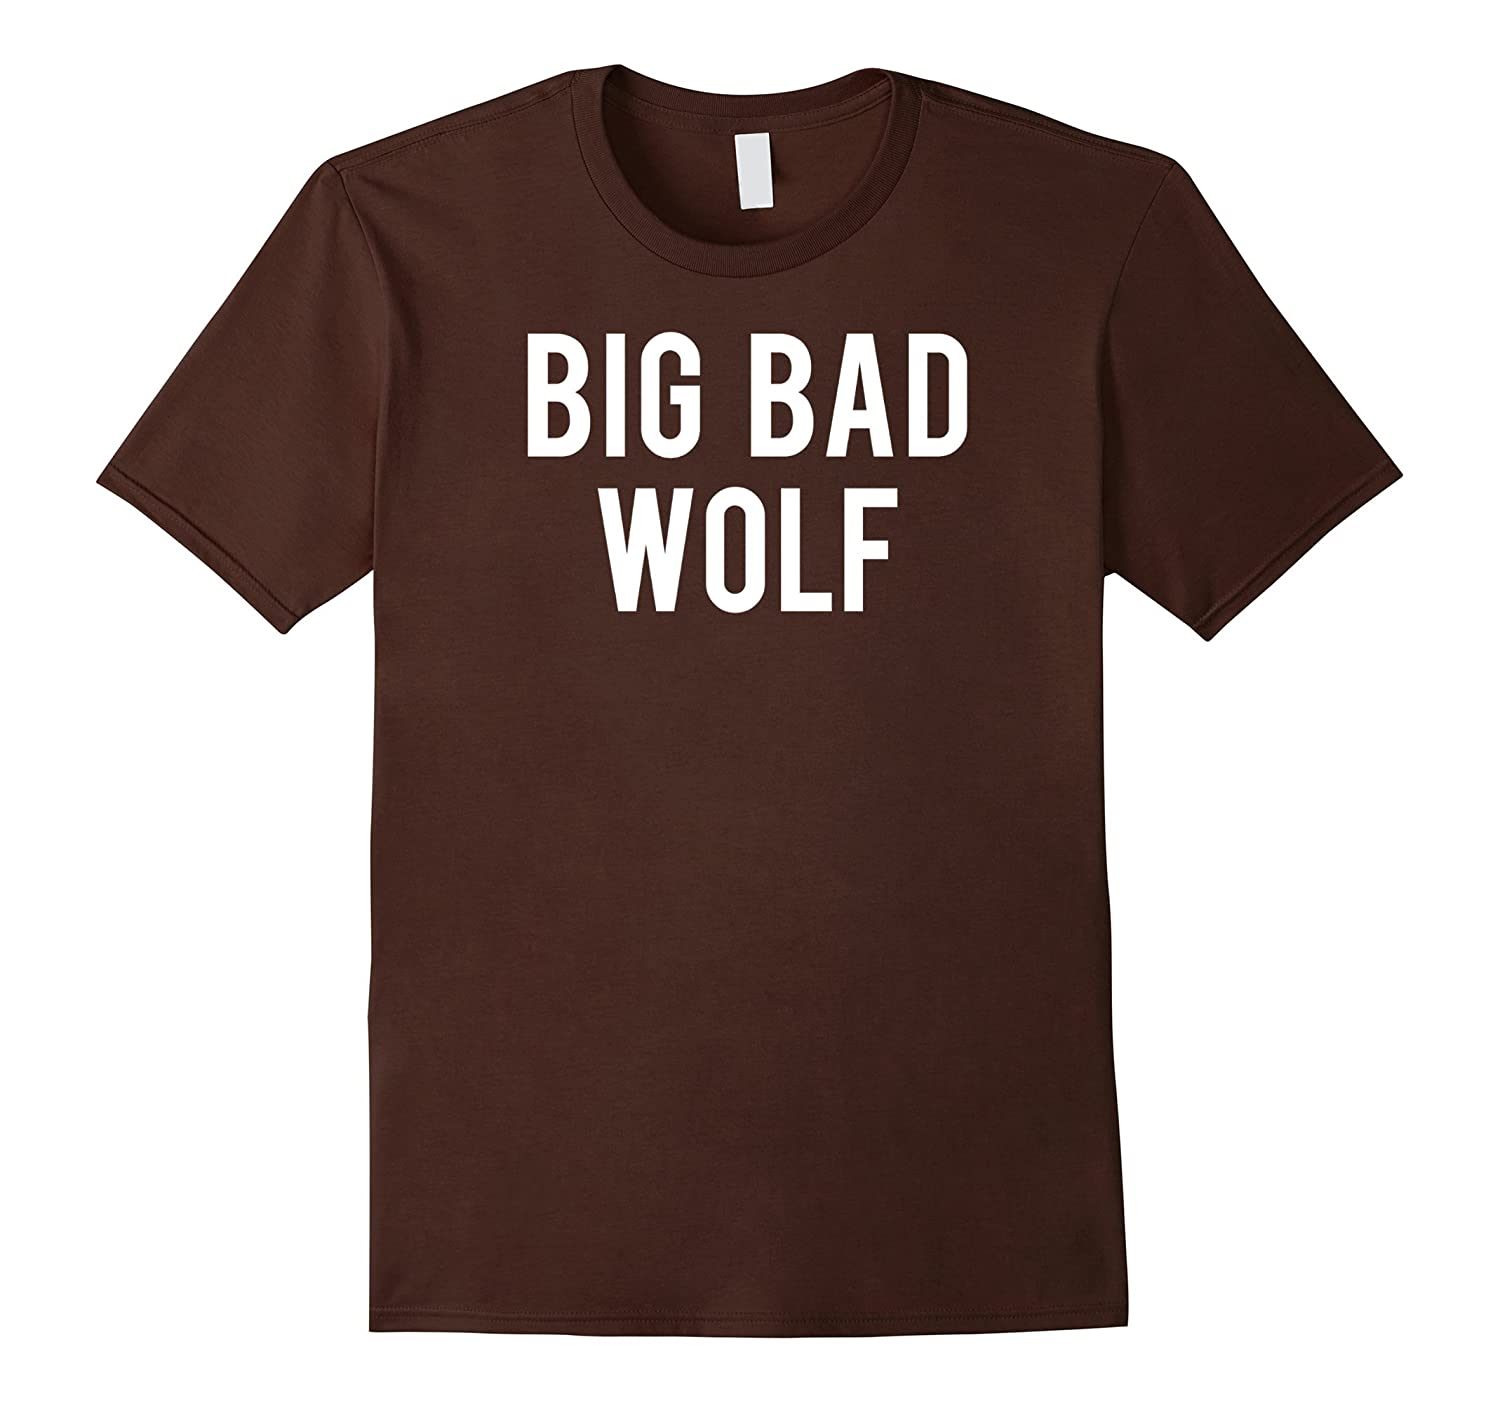 Big bad wolf T Shirt funny Wolves Werewolf cool dog gift tee-AZP